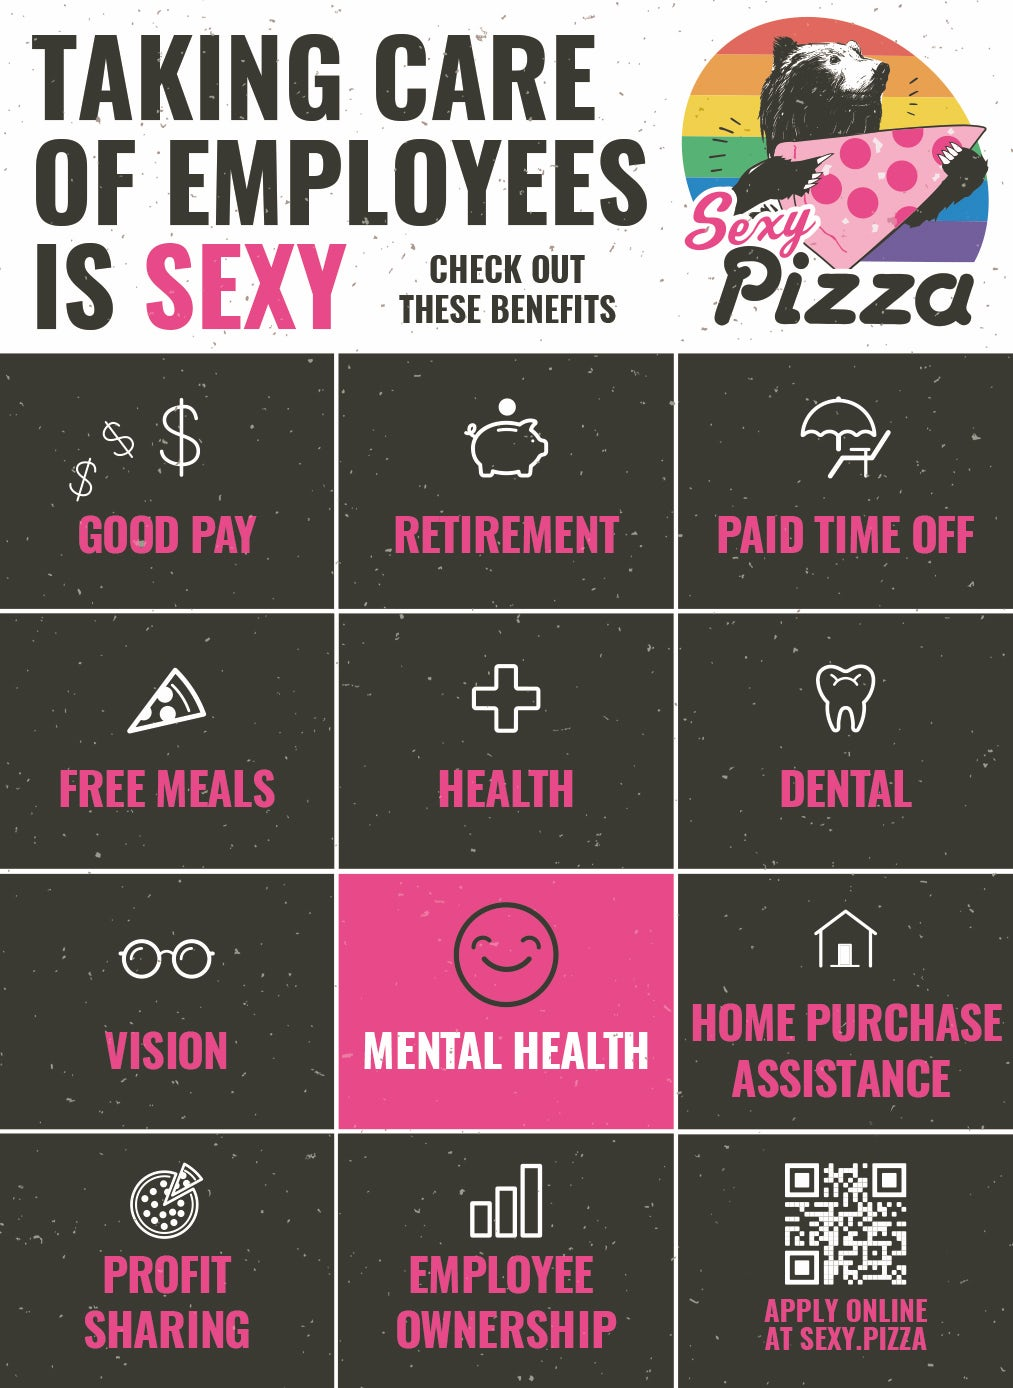 Sexy Pizza - Taking care of employees is sexy